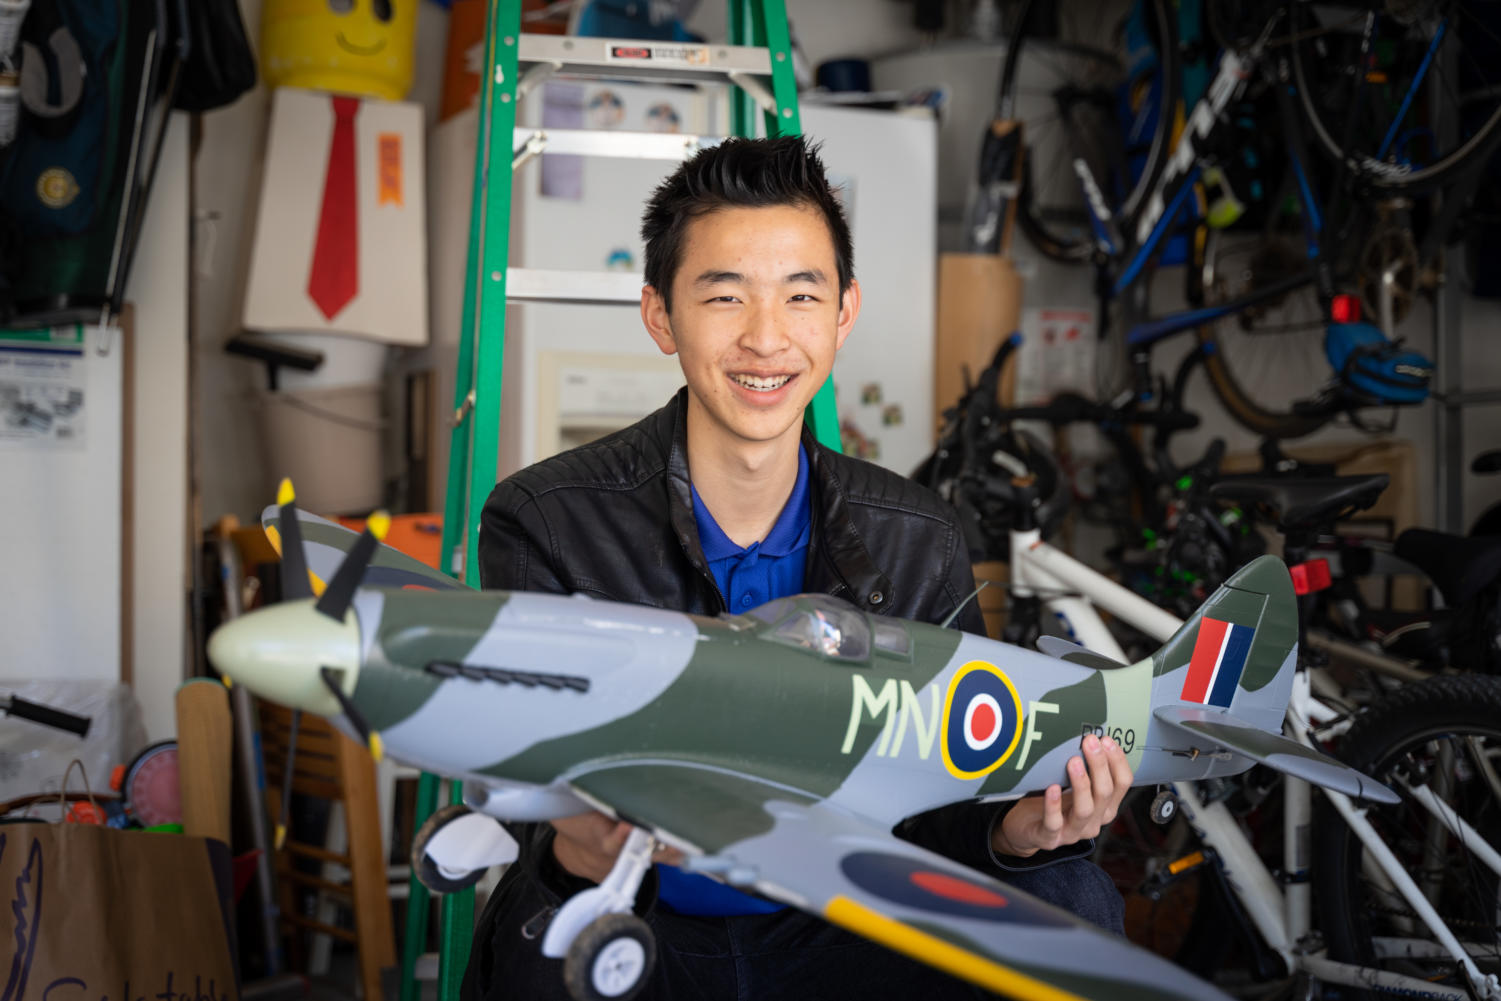 In his free time, Tam constructs his own R/C planes using interchangeable motors, styrofoam wings and circuitry he designed himself.